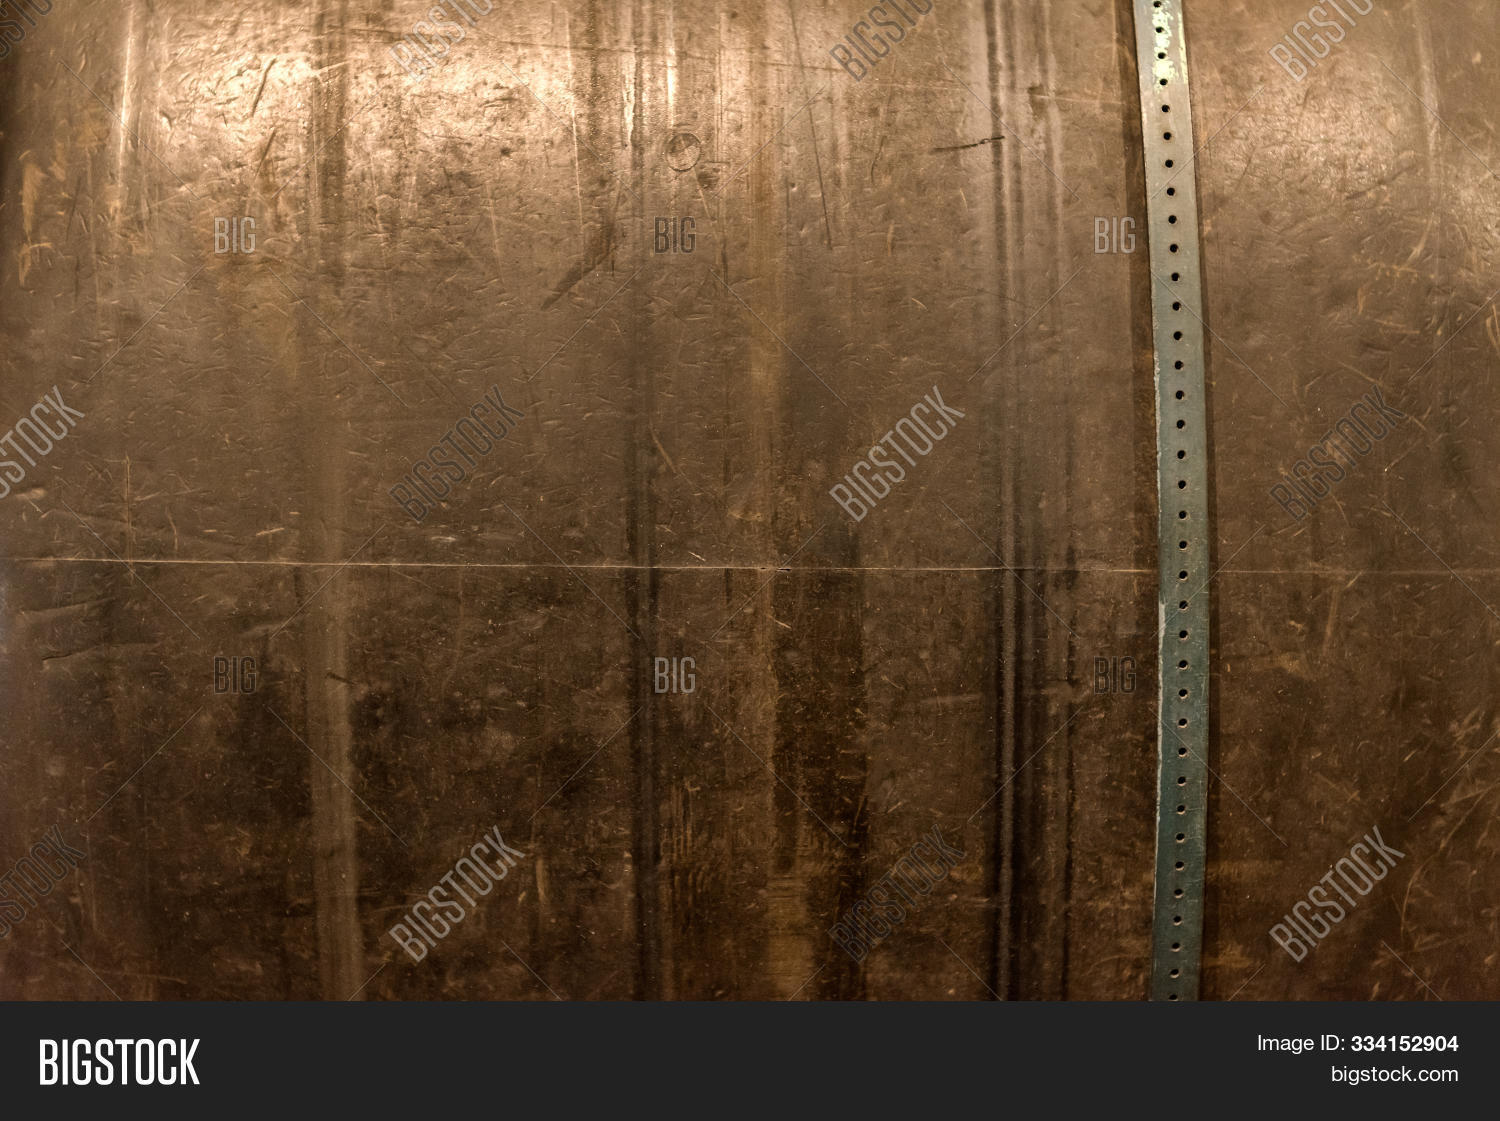 abstract,aged,background,black,brown,closeup,corroded,corrosion,damaged,dark,decoration,design,dirty,frame,grunge,grungy,hard,iron,material,metal,metallic,old,pattern,plate,red,retro,rough,rust,rusted,rustic,rusty,space,stain,steel,style,surface,texture,textured,tile,tillable,tone,unique,vintage,vitrified,wall,worn